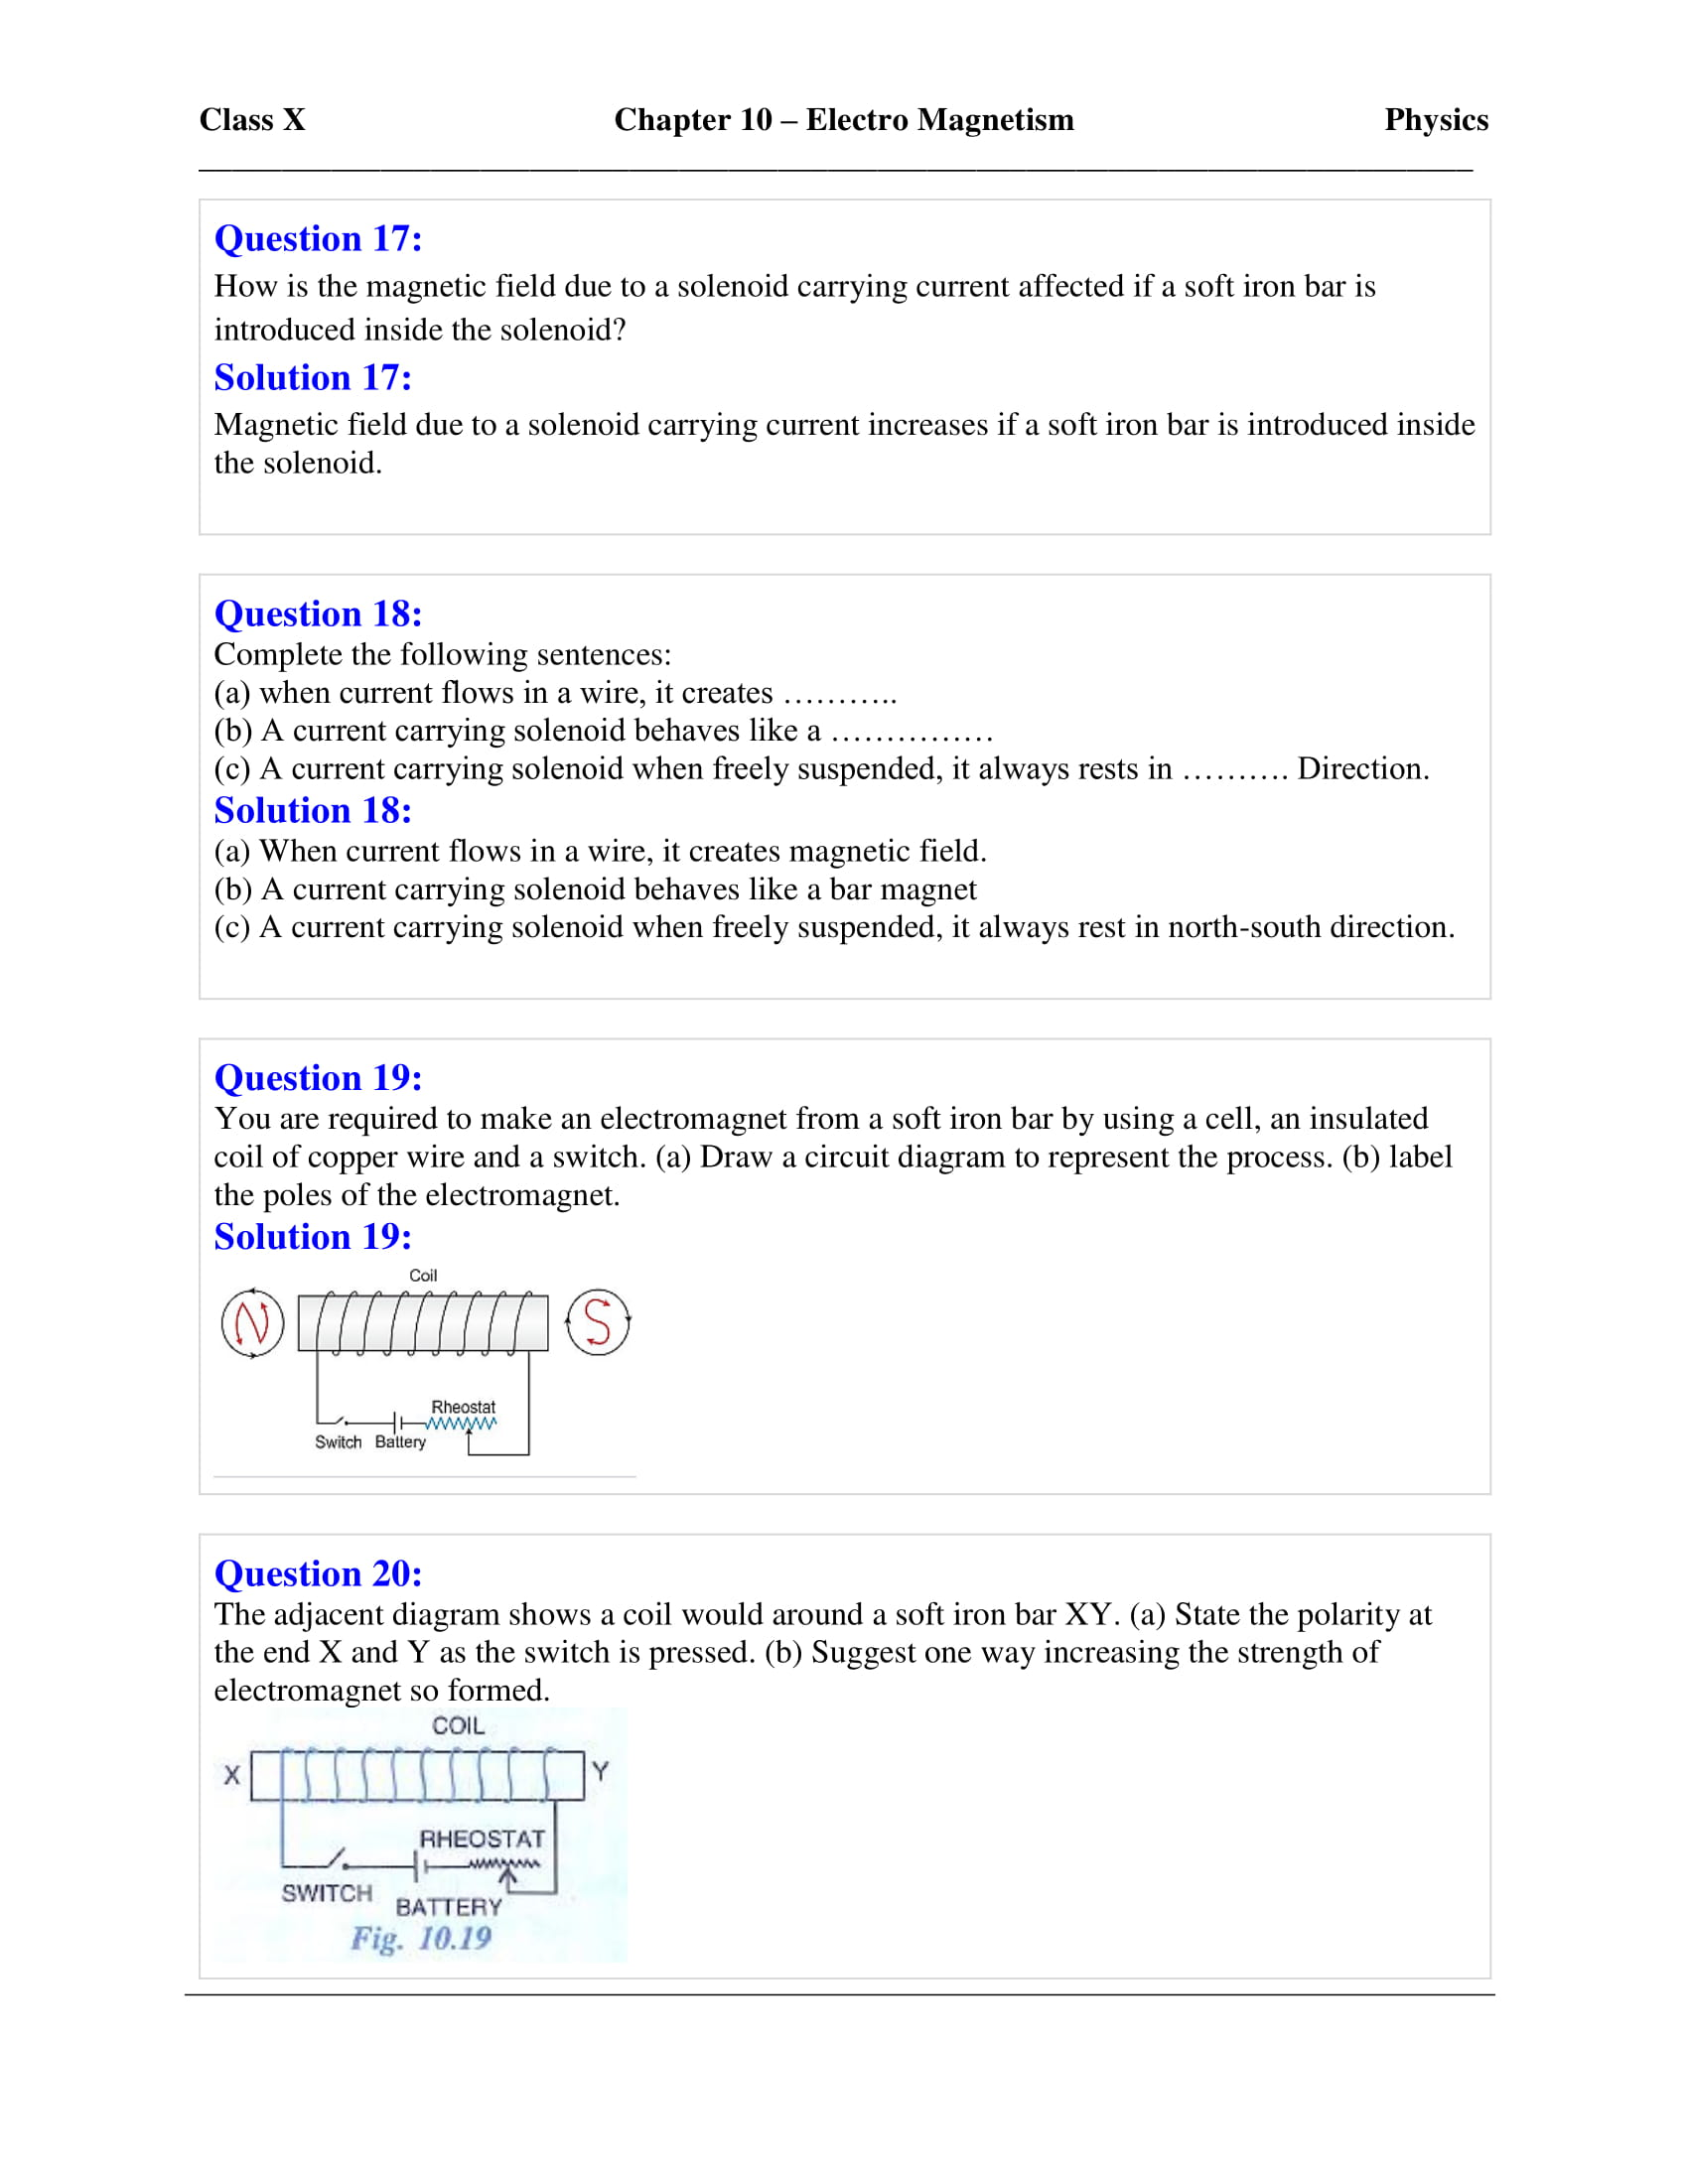 icse-selina-physics-solutions-class-10-chapter-10-electro-magnetism-07